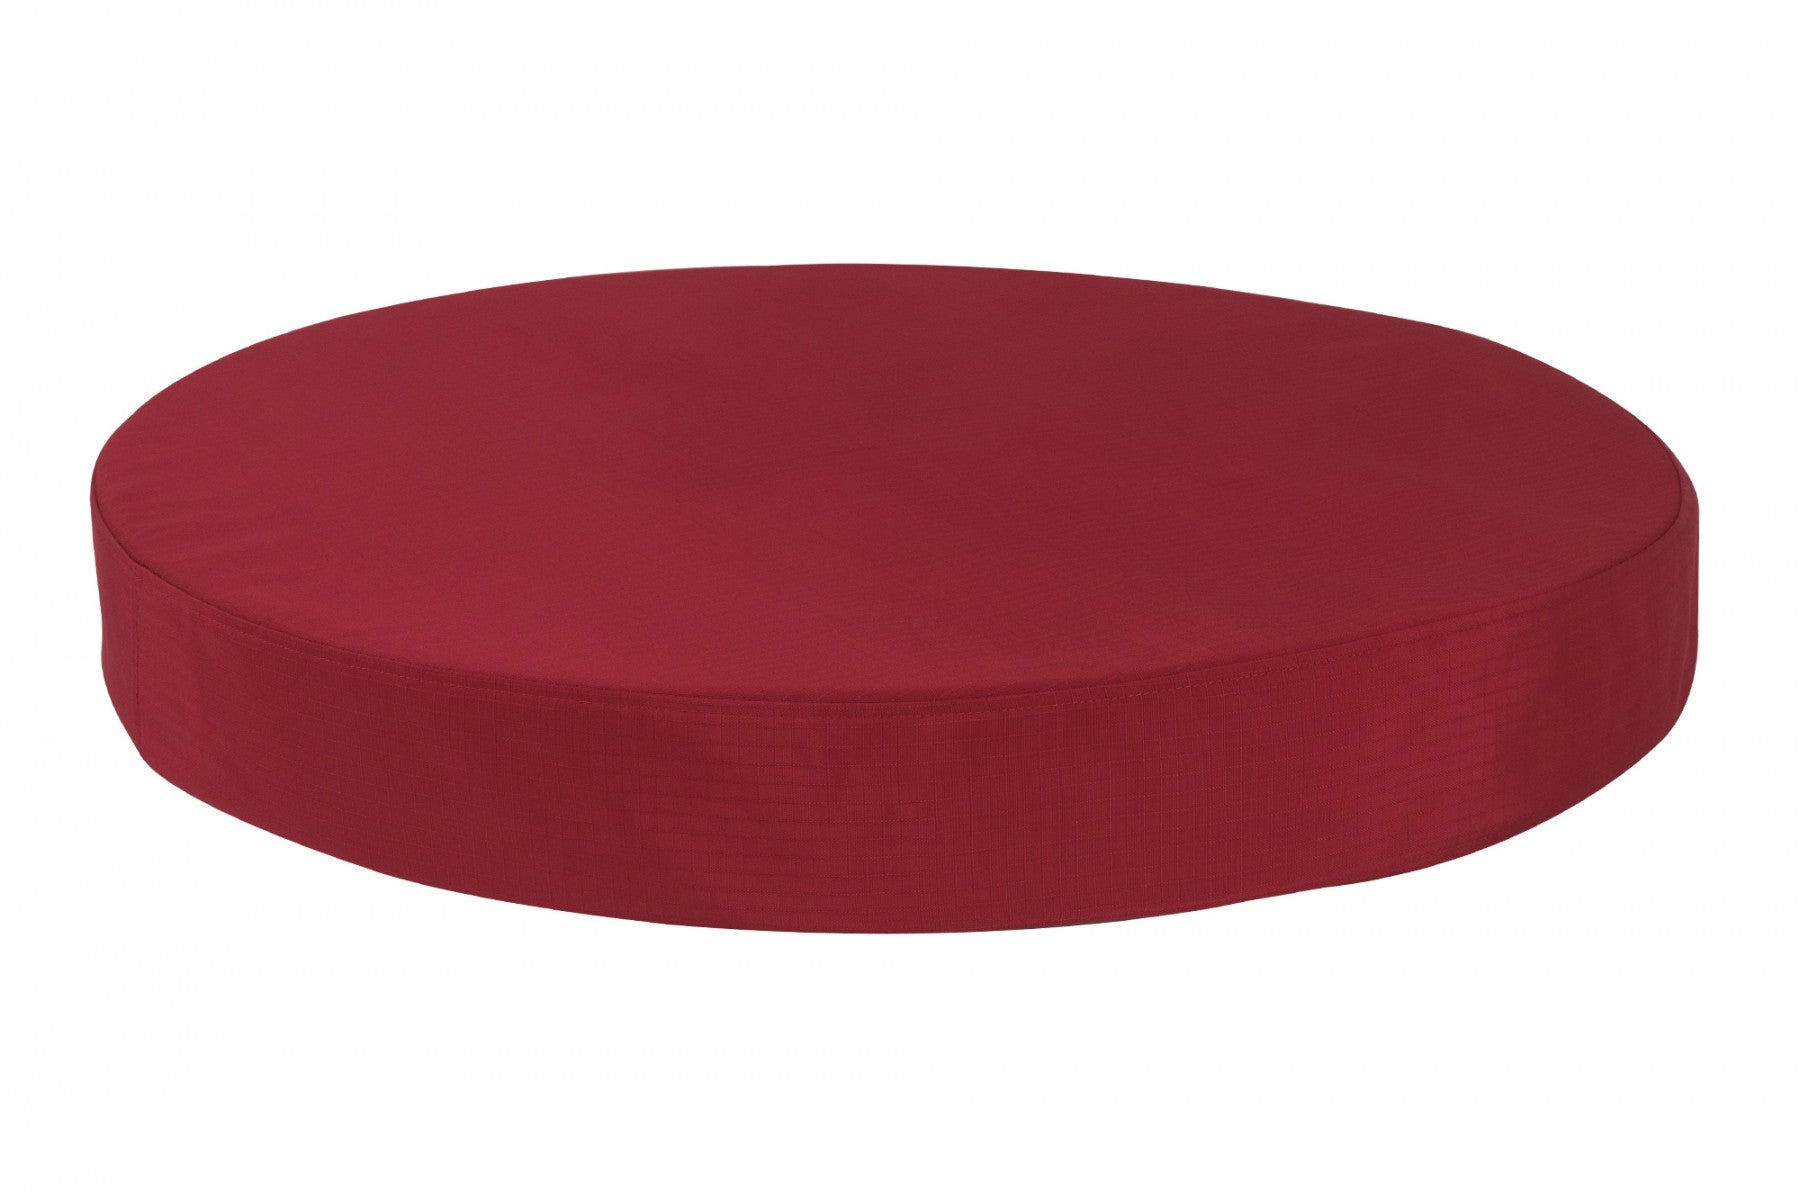 chew-resistant orthopedic round dog bed red